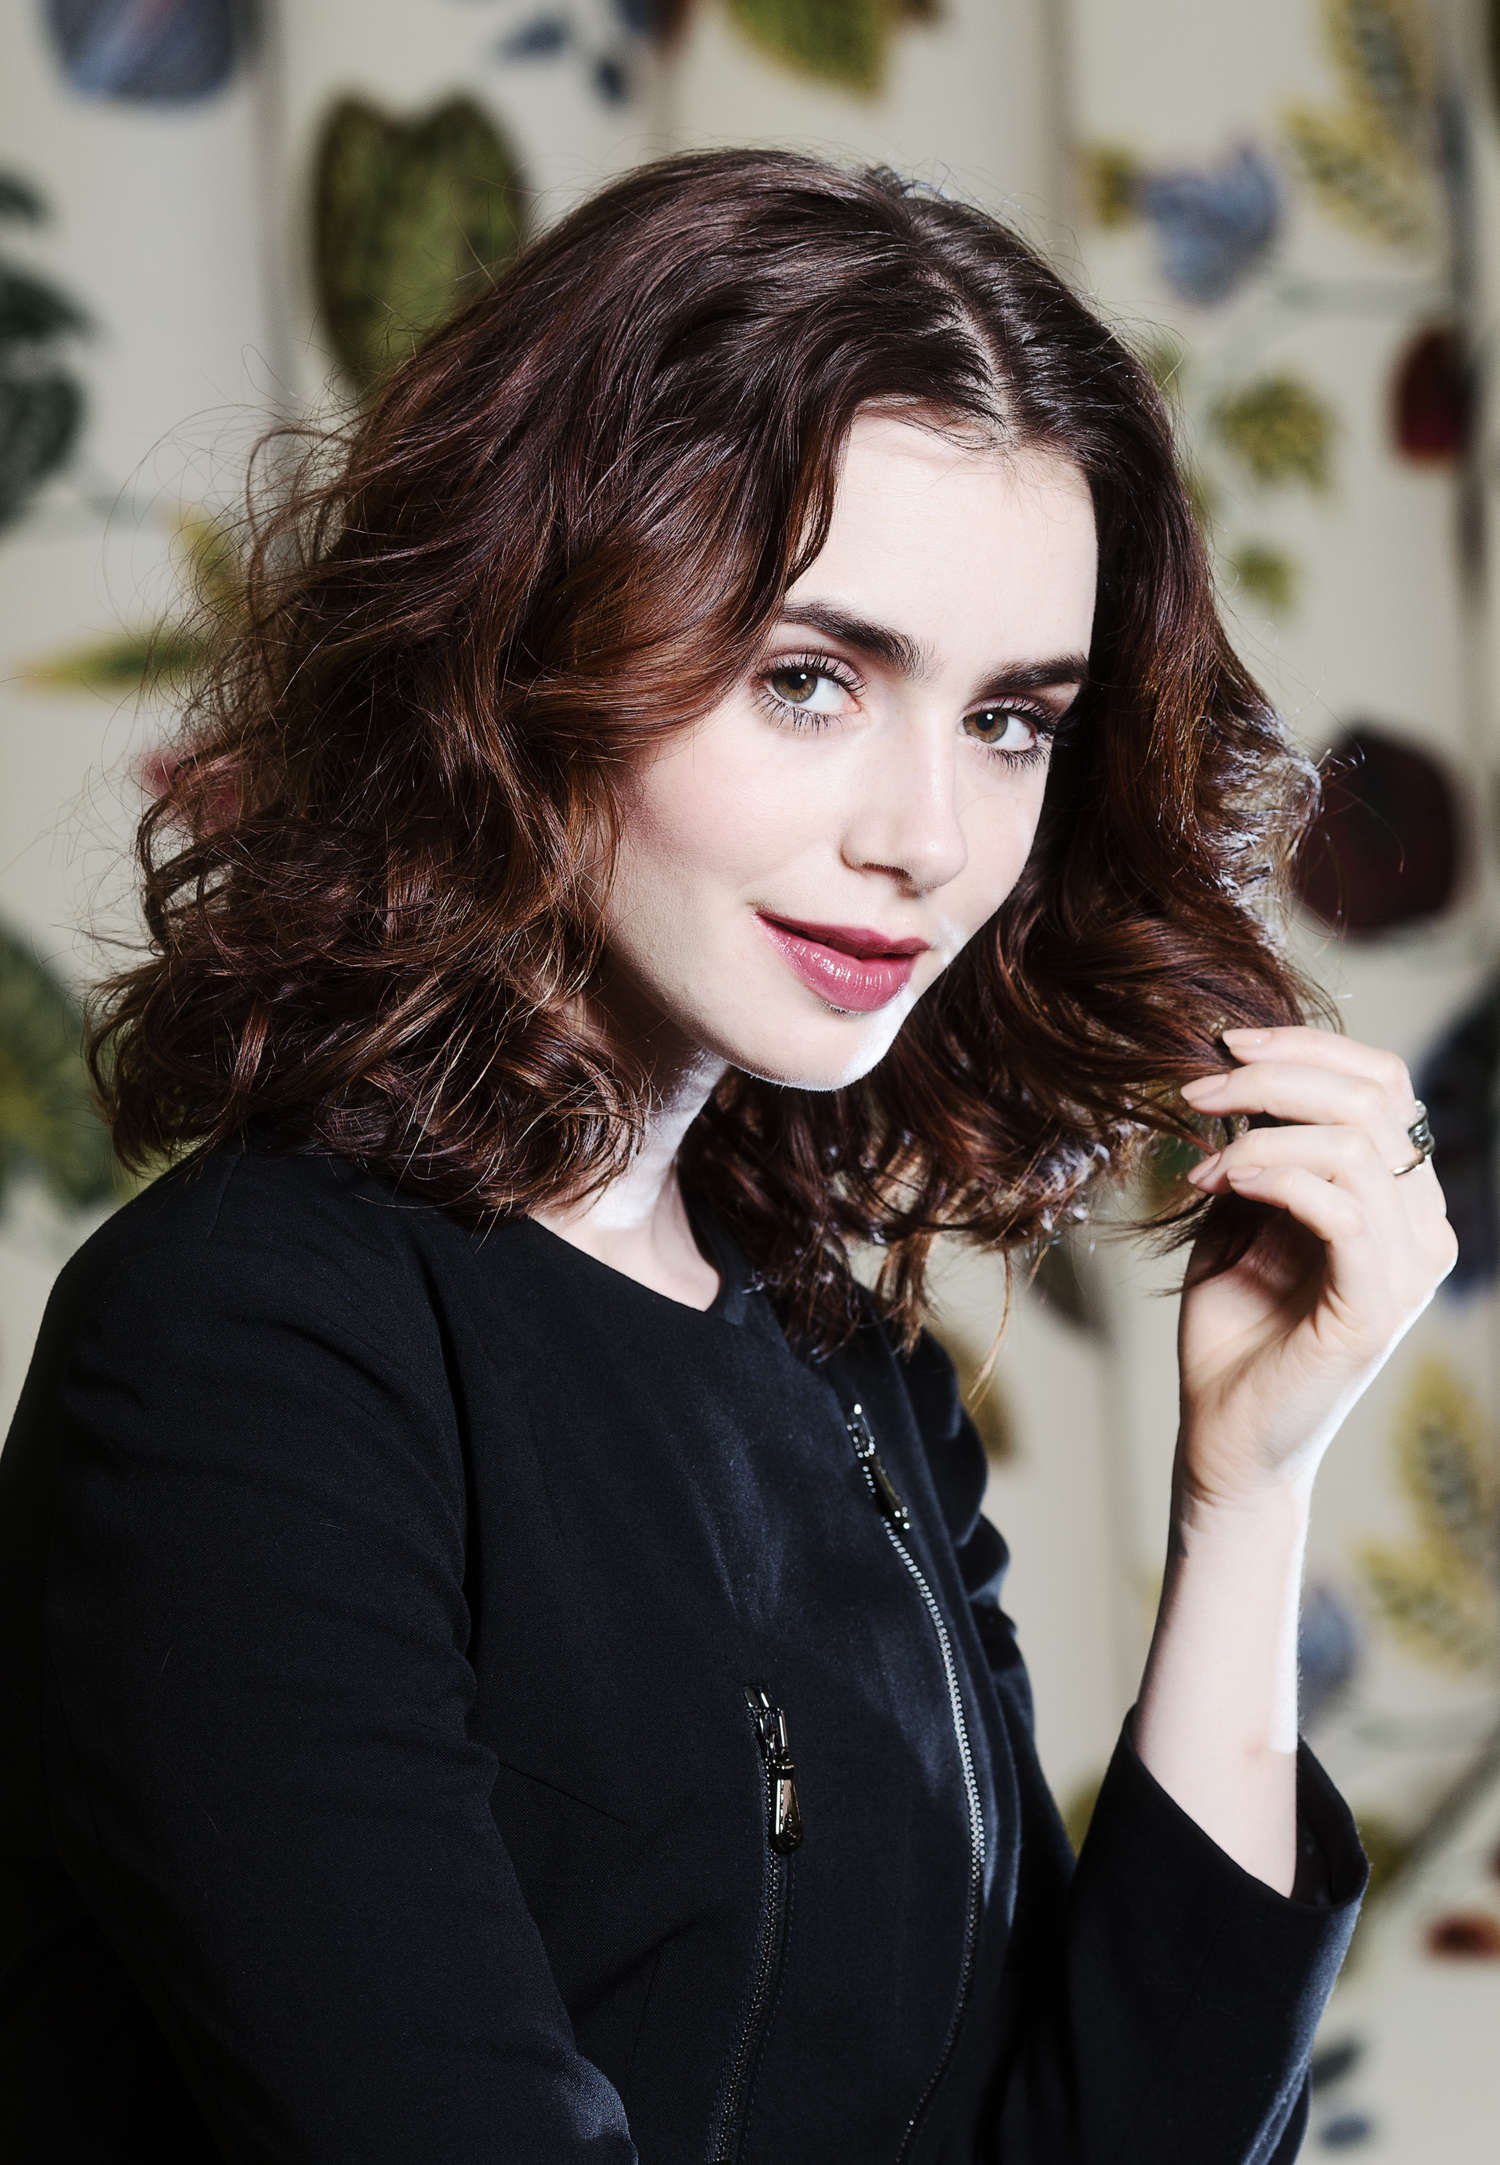 Lily Collins Ki Price Photoshoot For The Times Uk 12